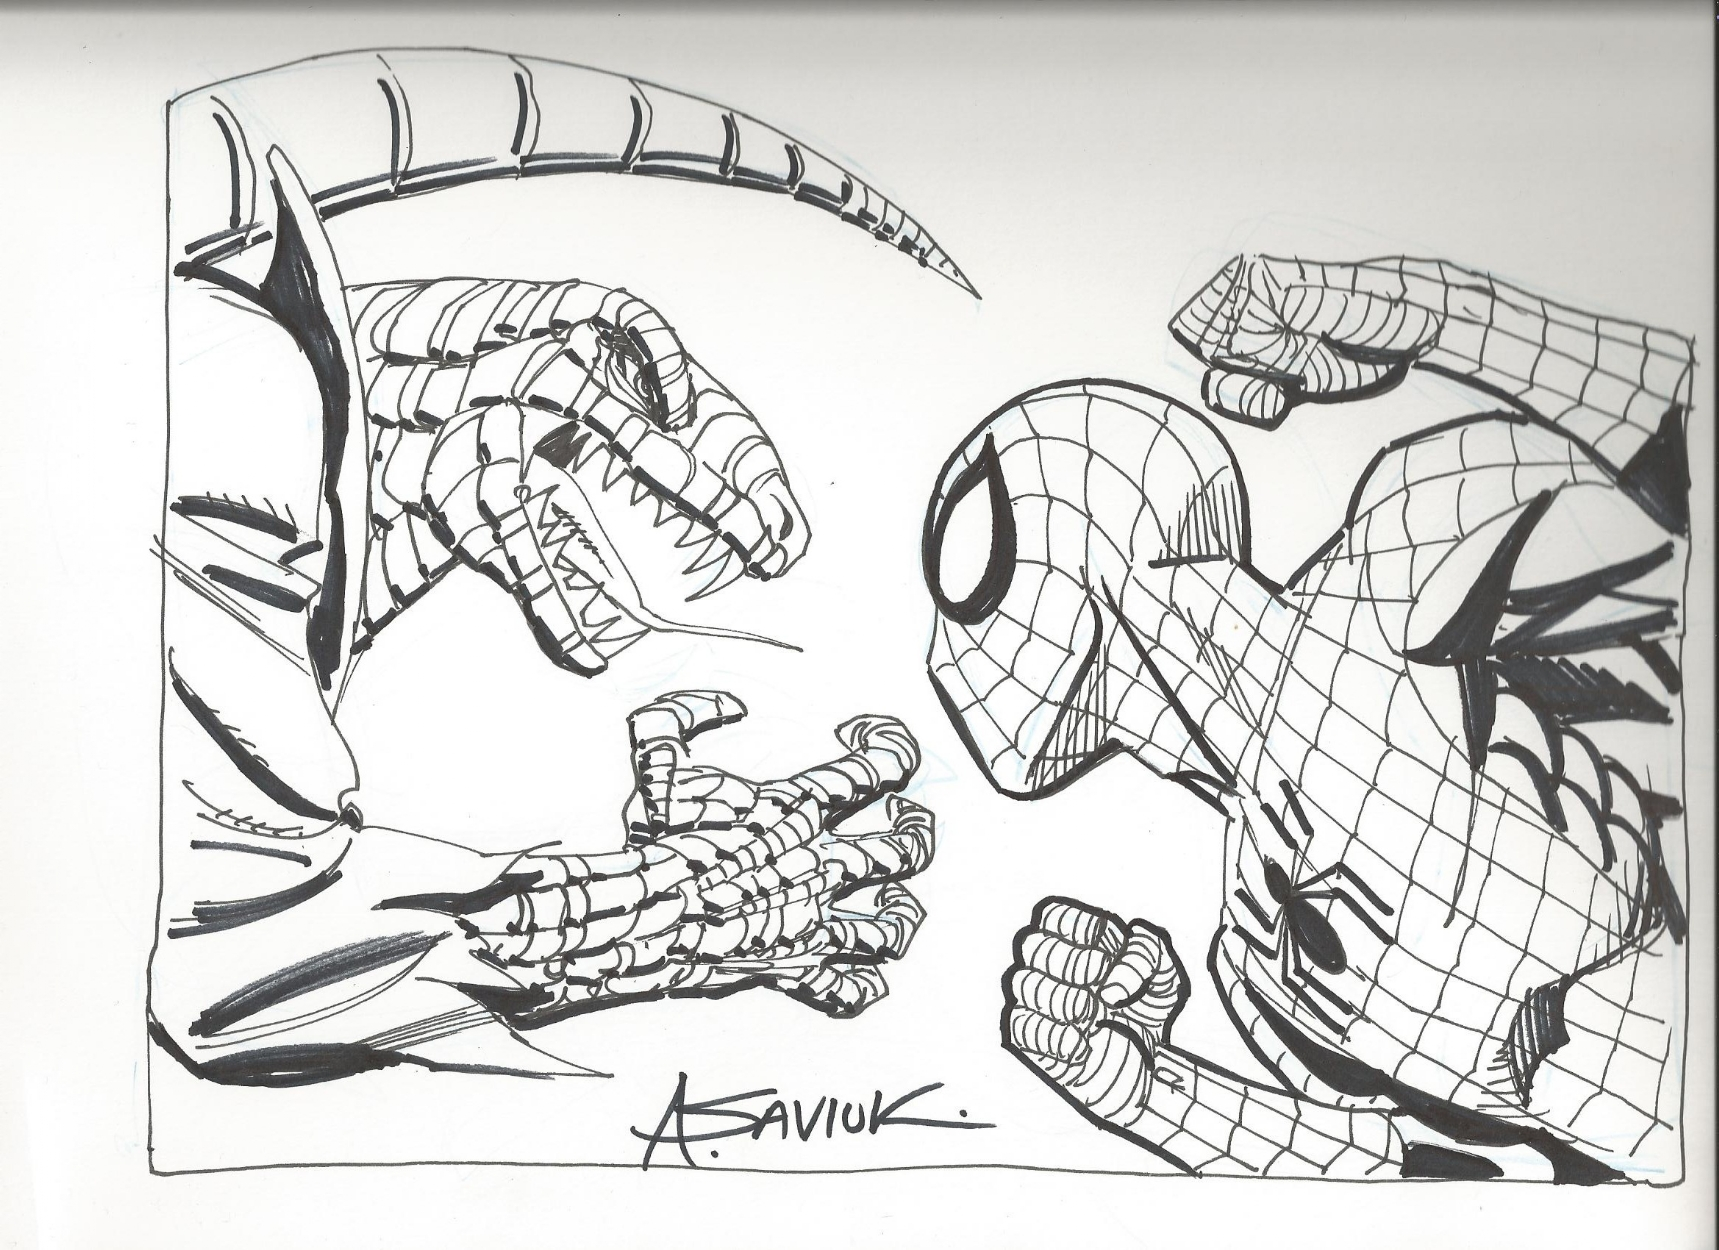 Spiderman Vs The Lizard By Alex Saviuk In Rob Shalda S Spidey And Foes Comic Art Gallery Room